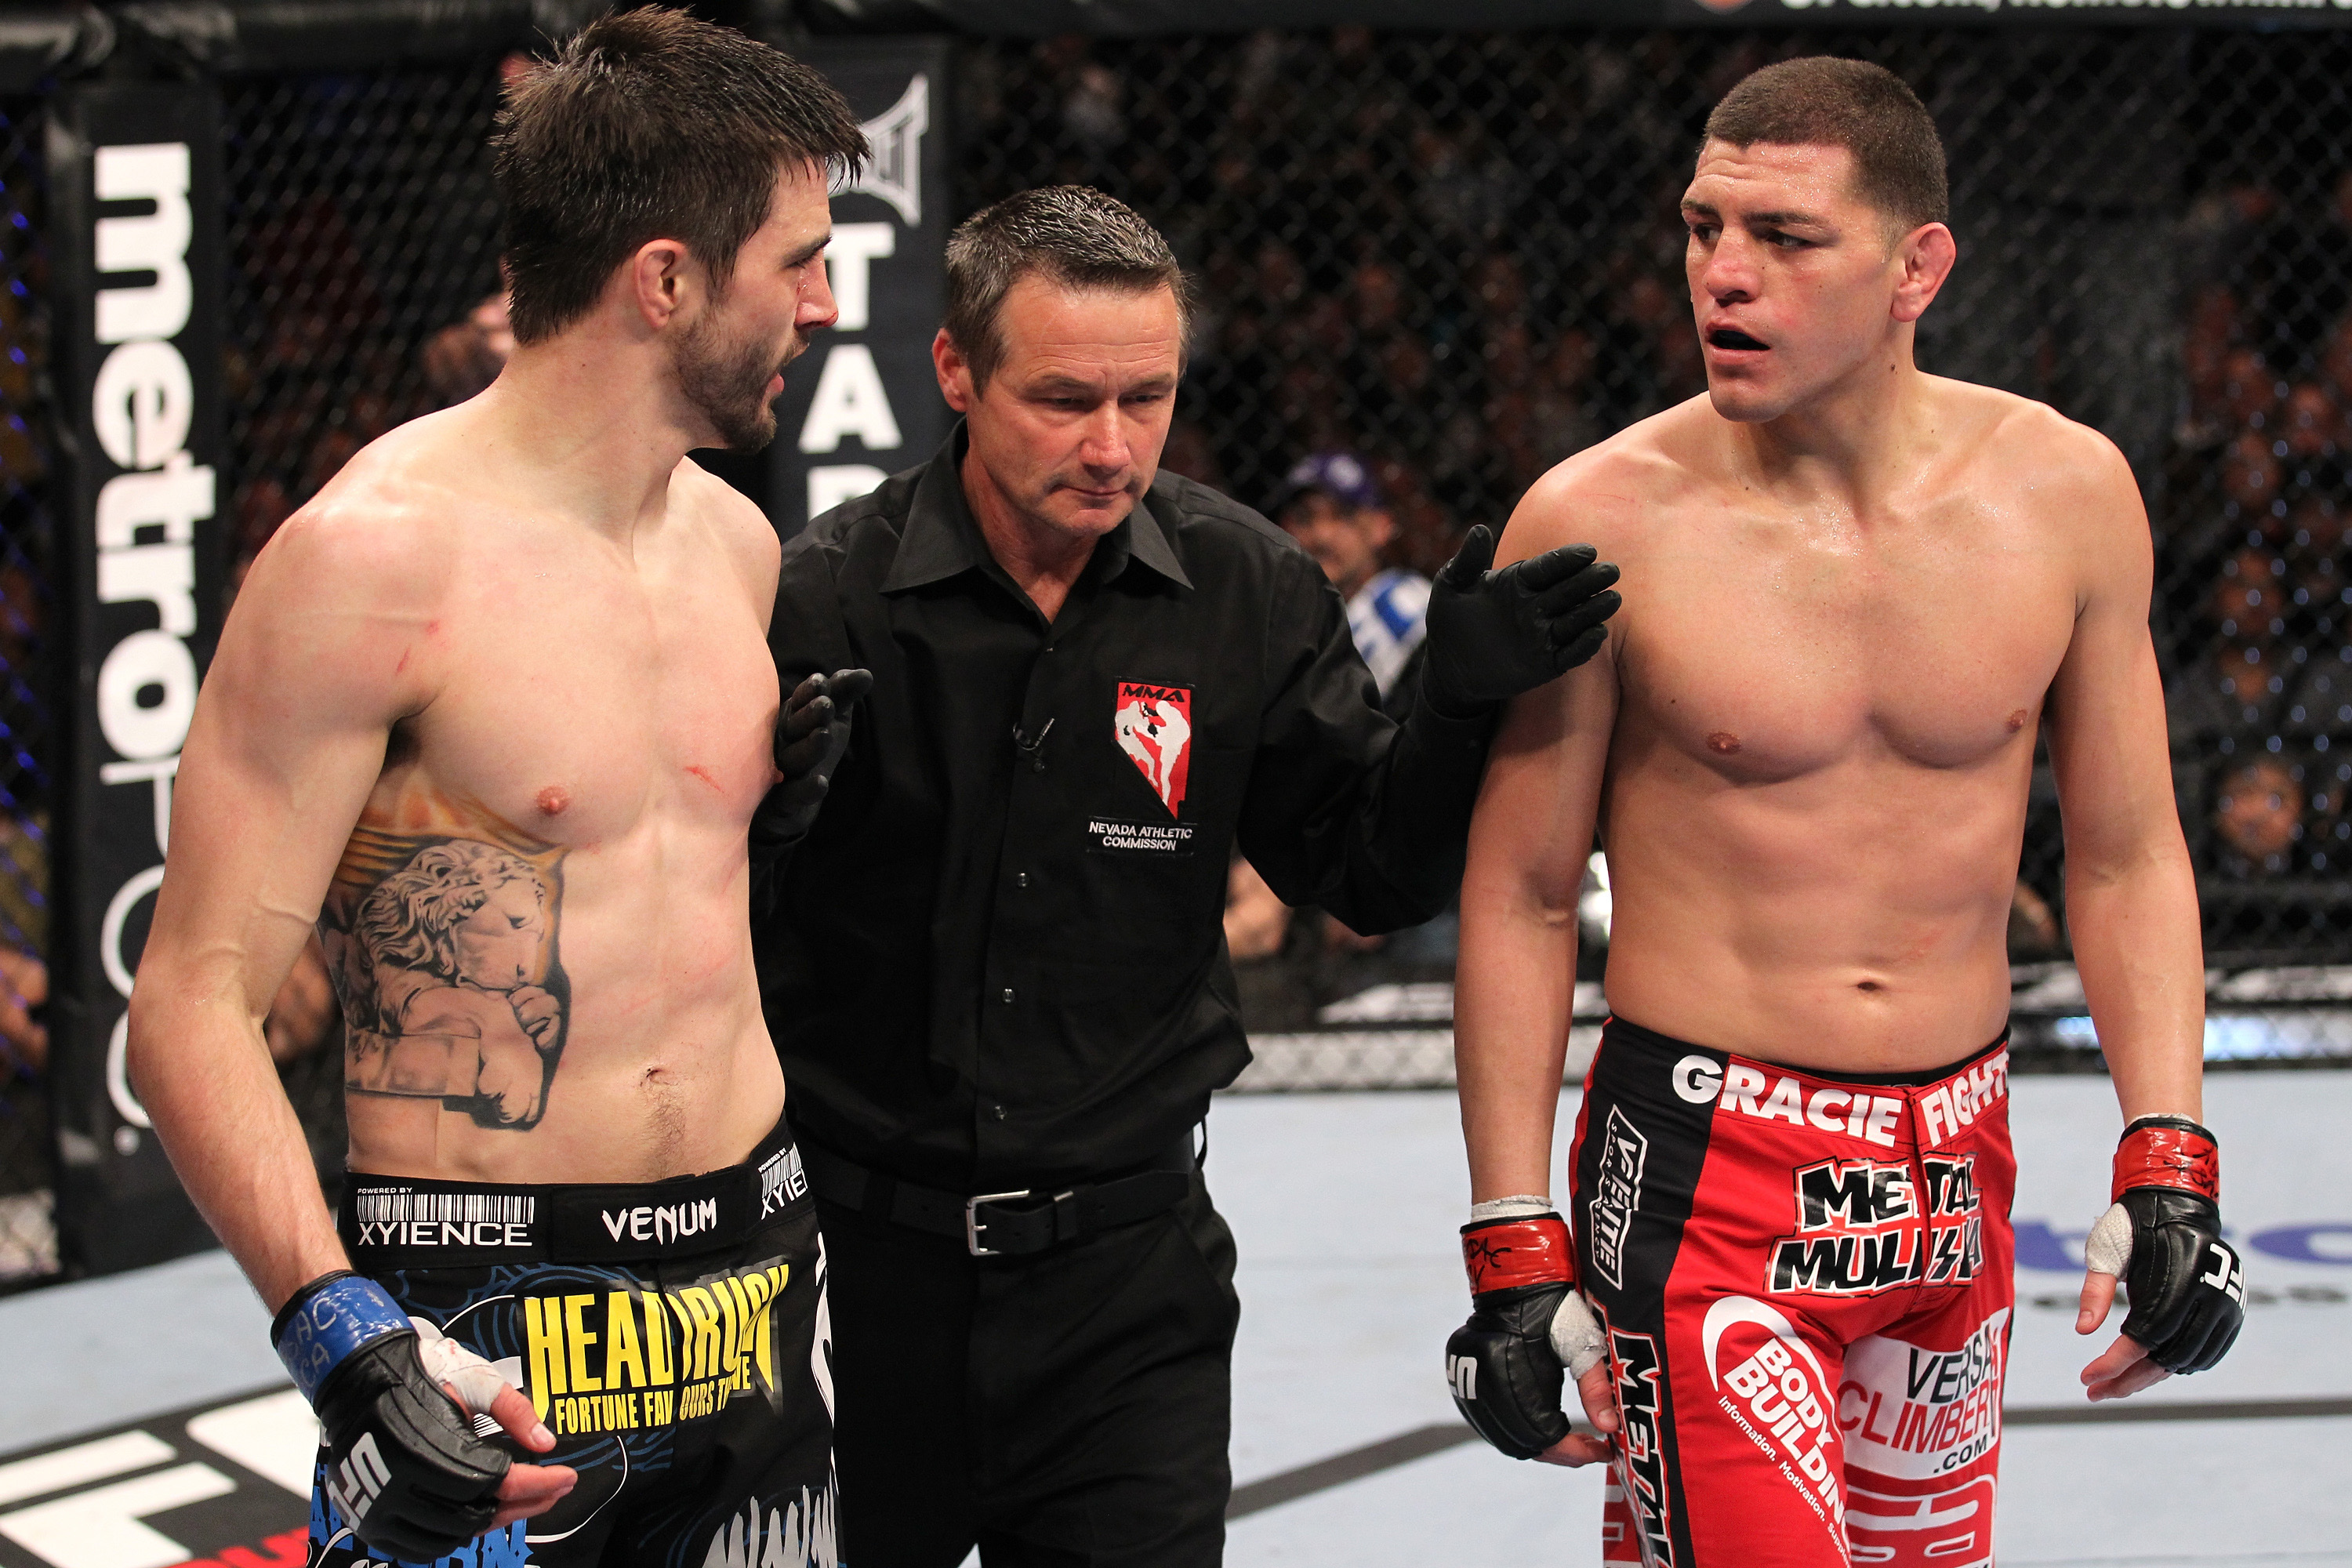 Diaz and Condit talk trash between rounds